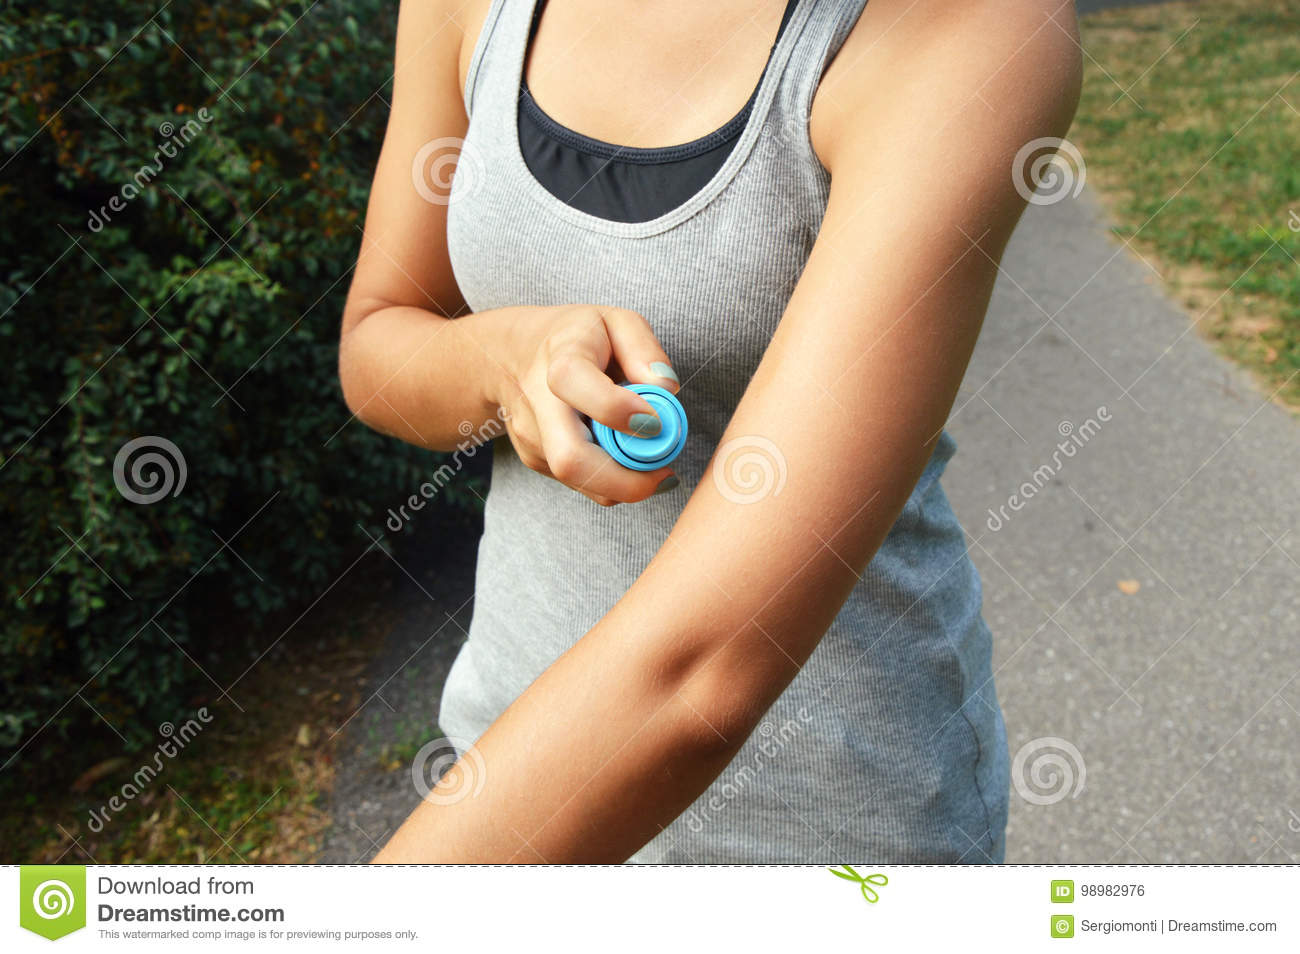 Mosquito repellent spray. Woman spraying insect repellent against bug bites on arm skin outdoor in nature forest using spray